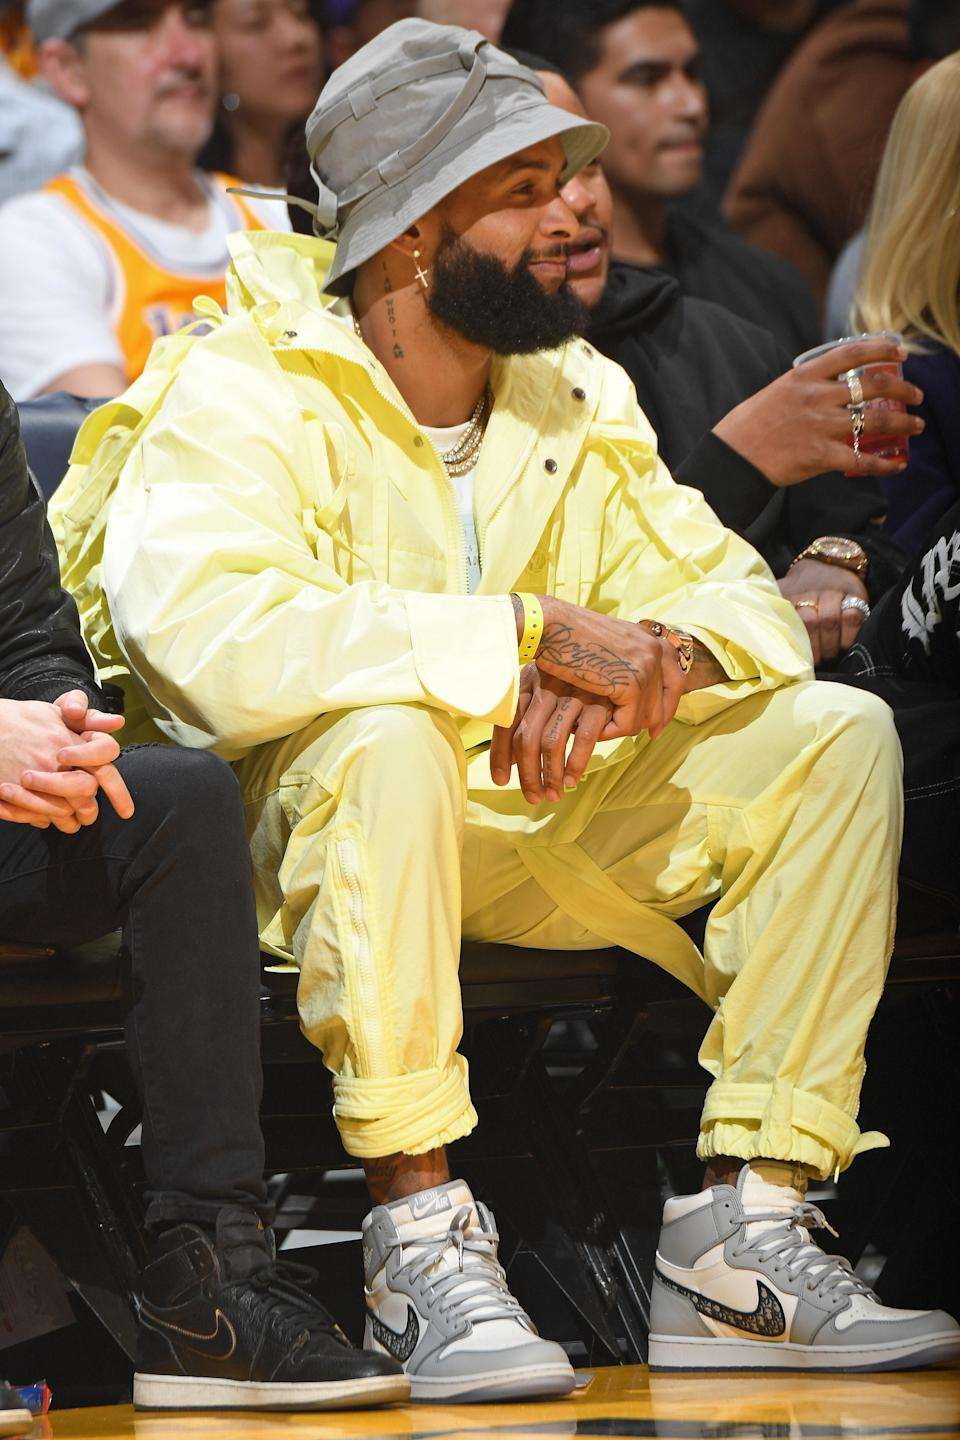 <p>WHAT: Louis Vuitton and Dior Air Jordan sneakers </p> <p>WHERE: The Nets-Lakers game in Los Angeles </p> <p>WHEN: March 11, 2020 </p> <p>WHY: Even when he's just a spectator, OBJ commands all the attention. </p>